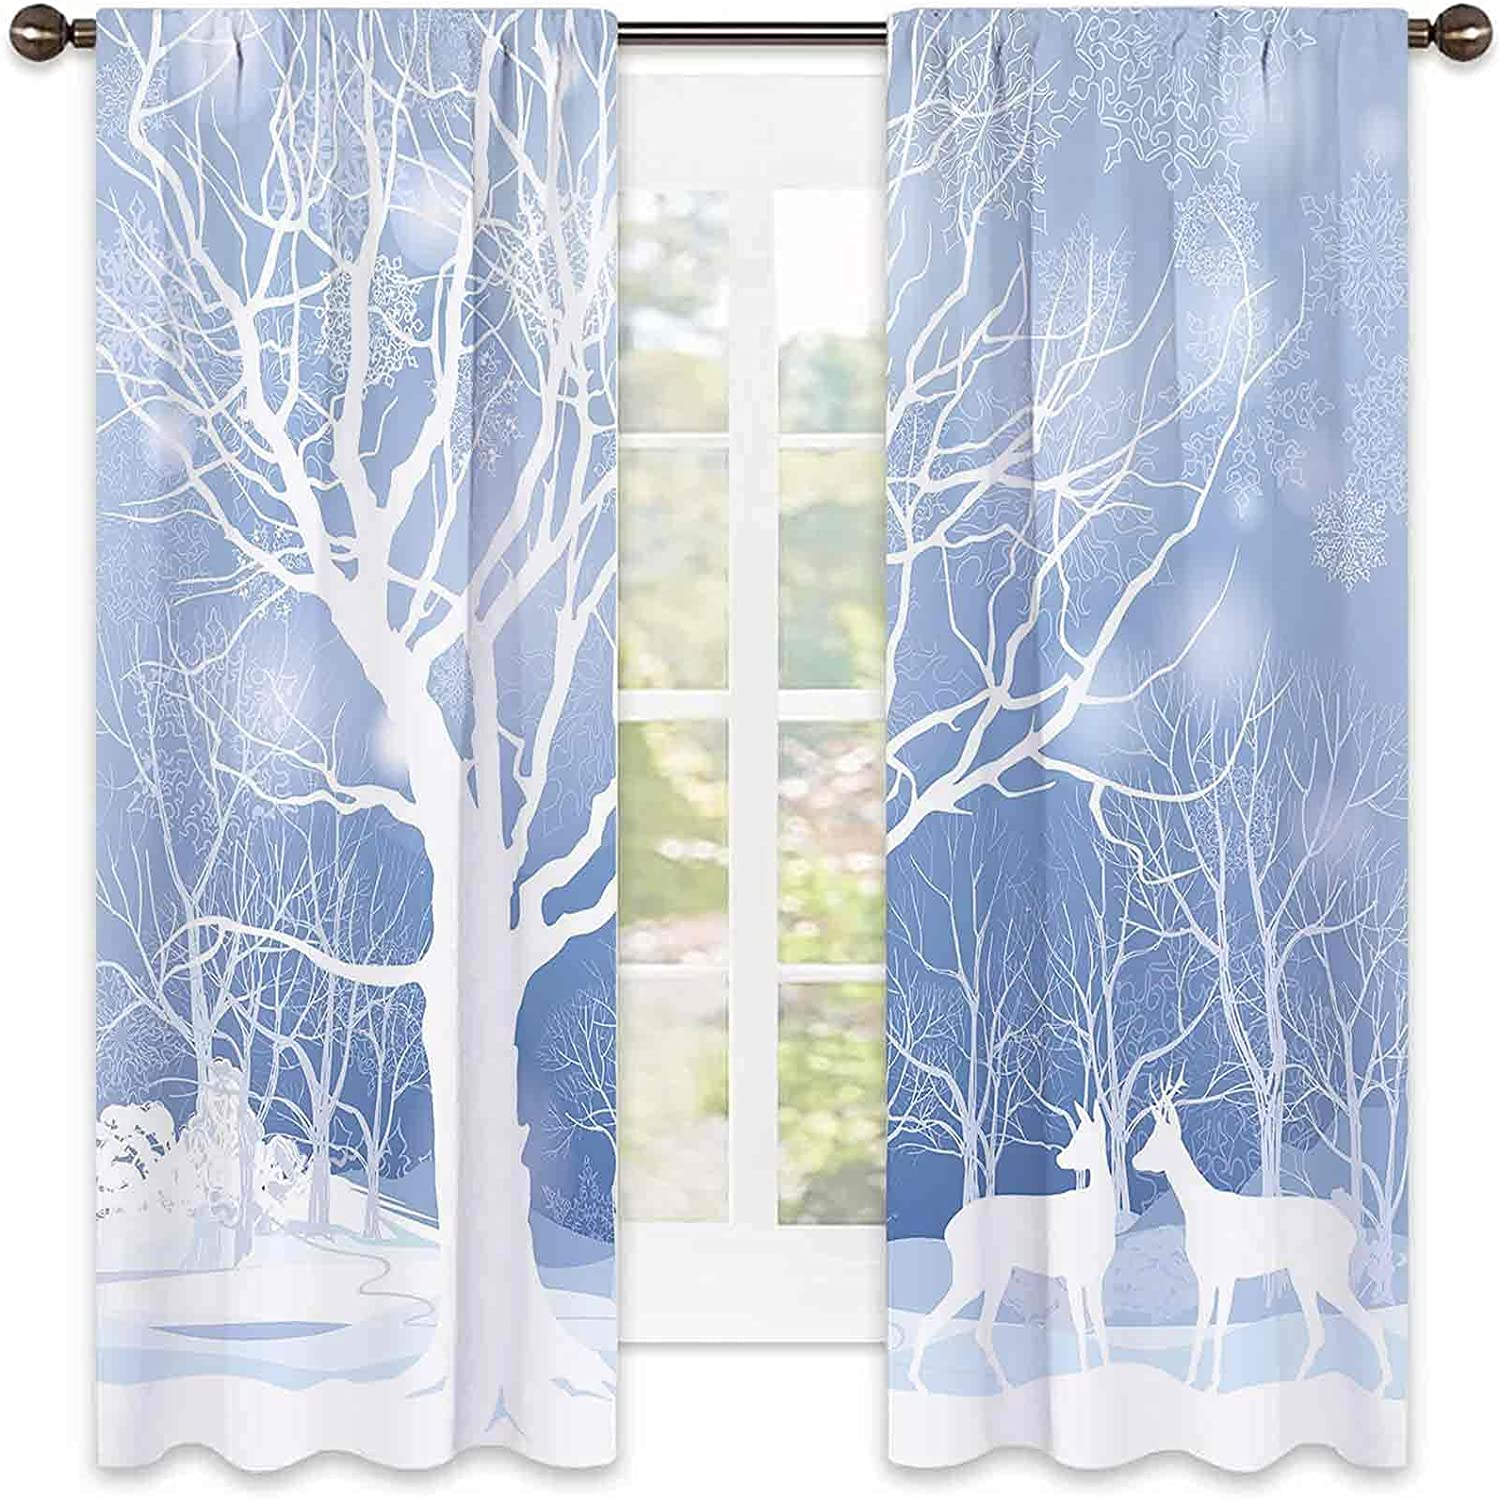 Winter Bombing free shipping Outstanding Shading Insulated Curtain S with Abstract Imagery